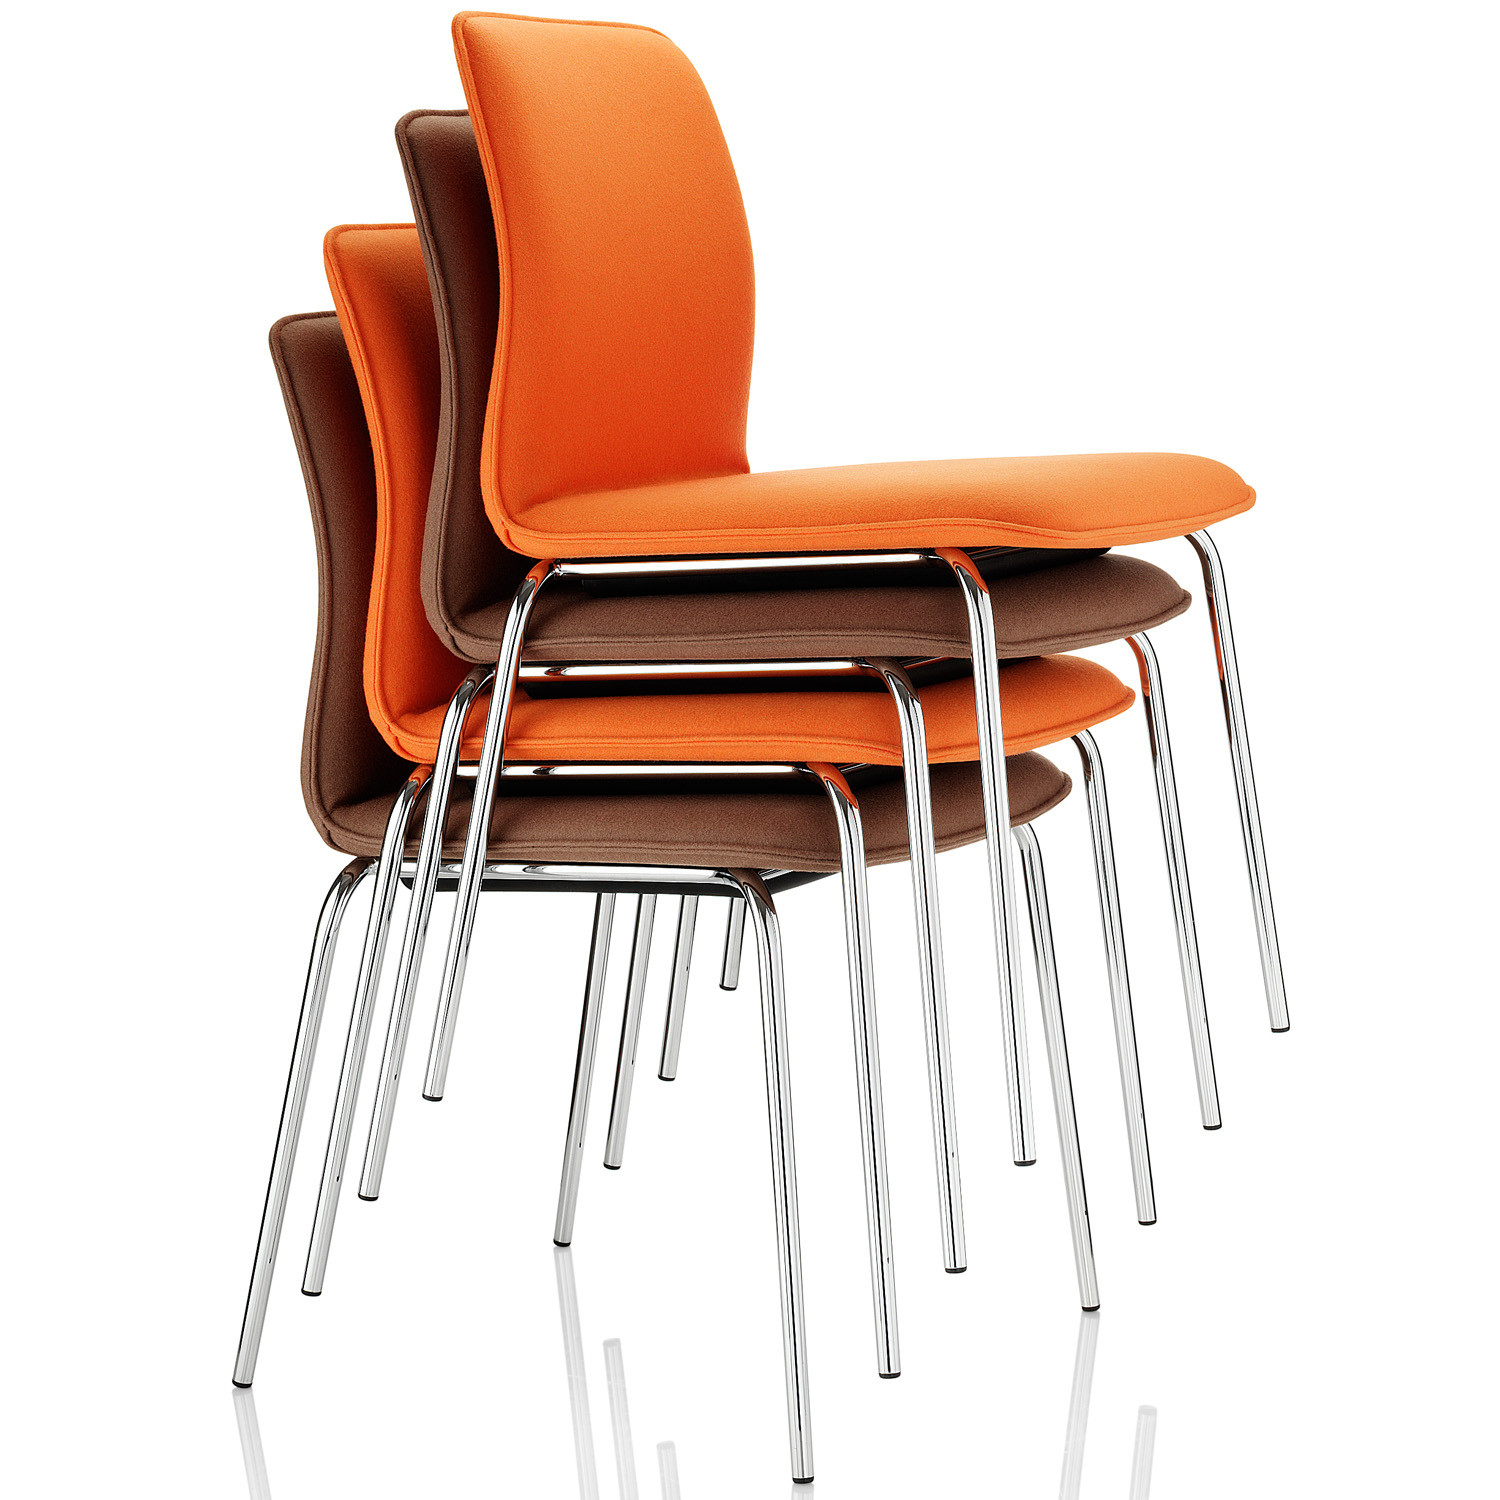 Arran Upholstered Stackable Chairs with 4-legged base